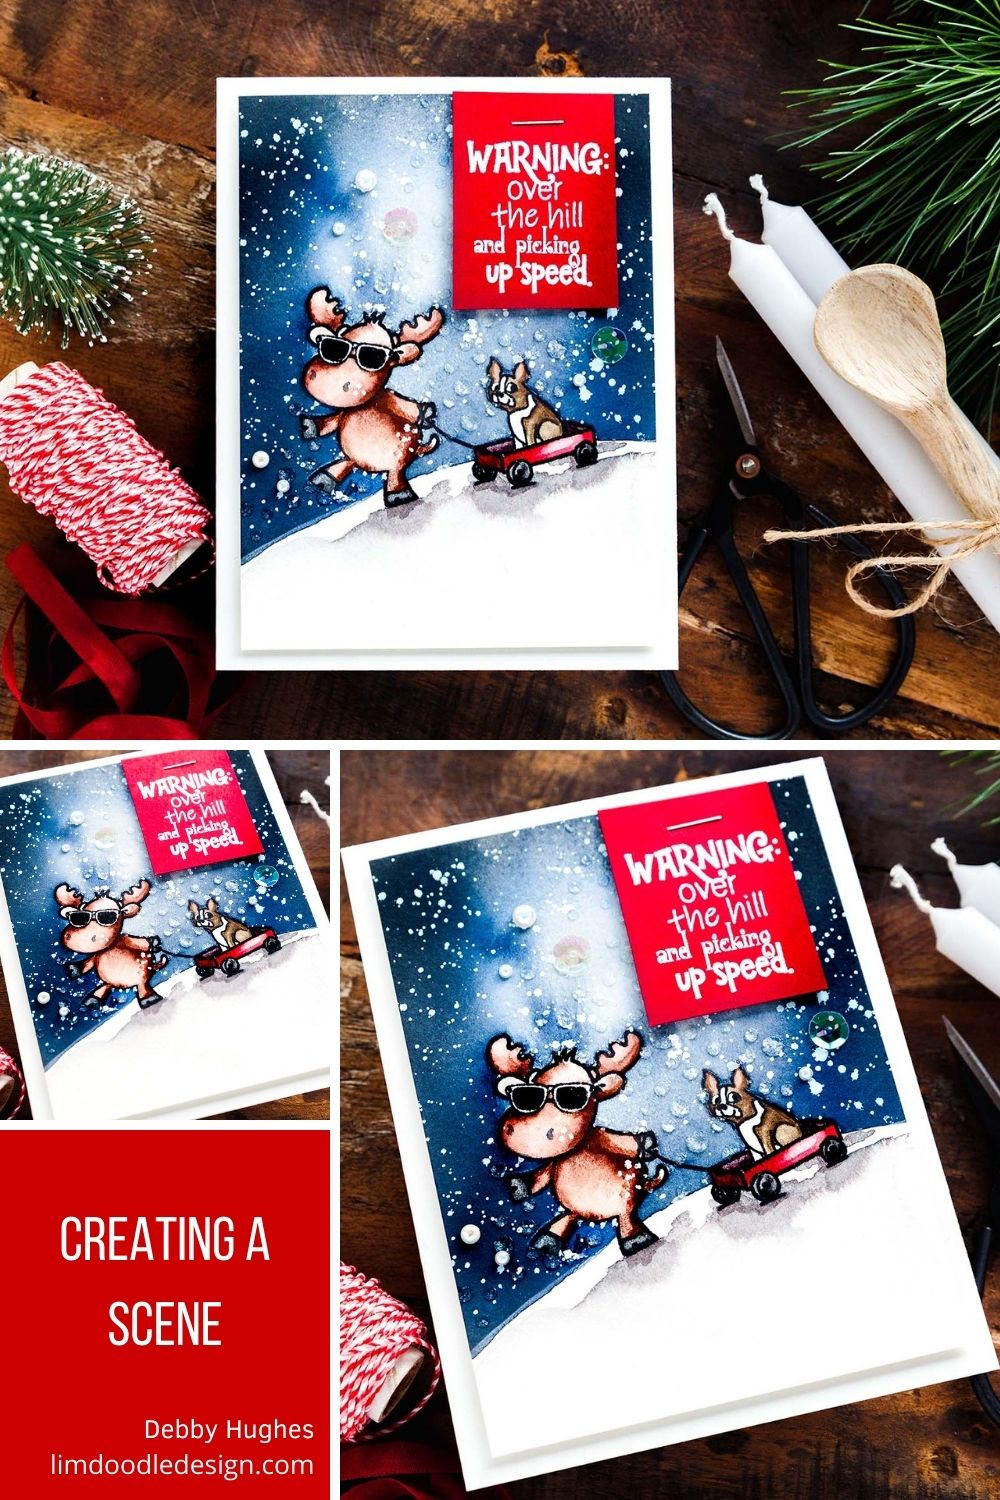 Creating a winter scene with the Riley & Co STAMPtember exclusive, limited edition set. Handmade card designs by Debby Hughes.